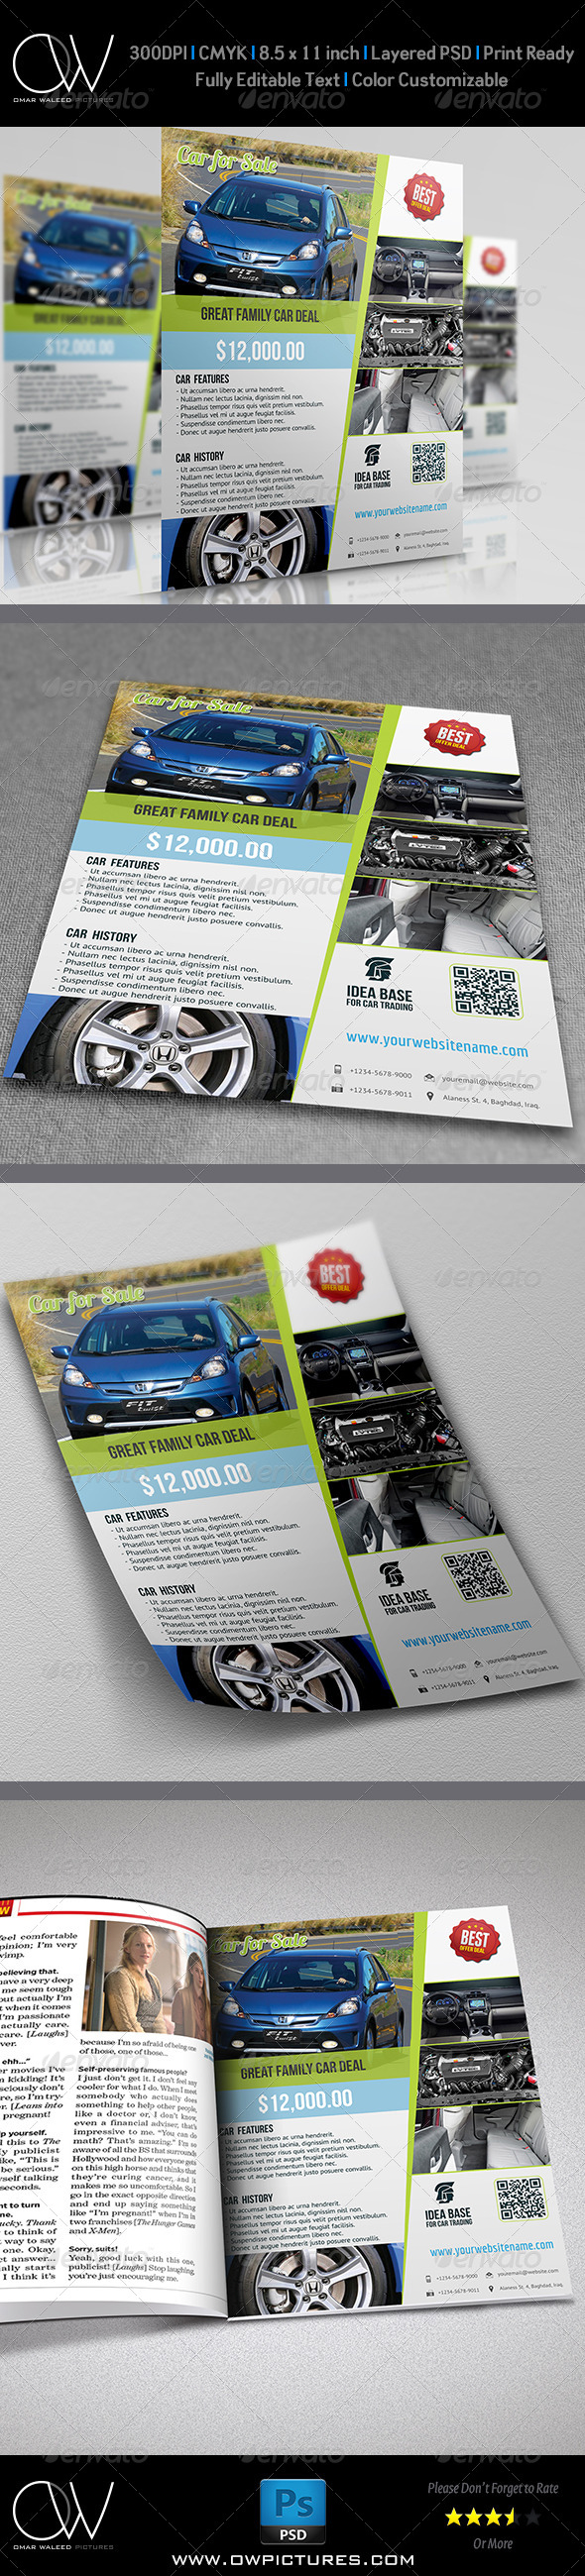 GraphicRiver Car for Sale Flyer 5247639